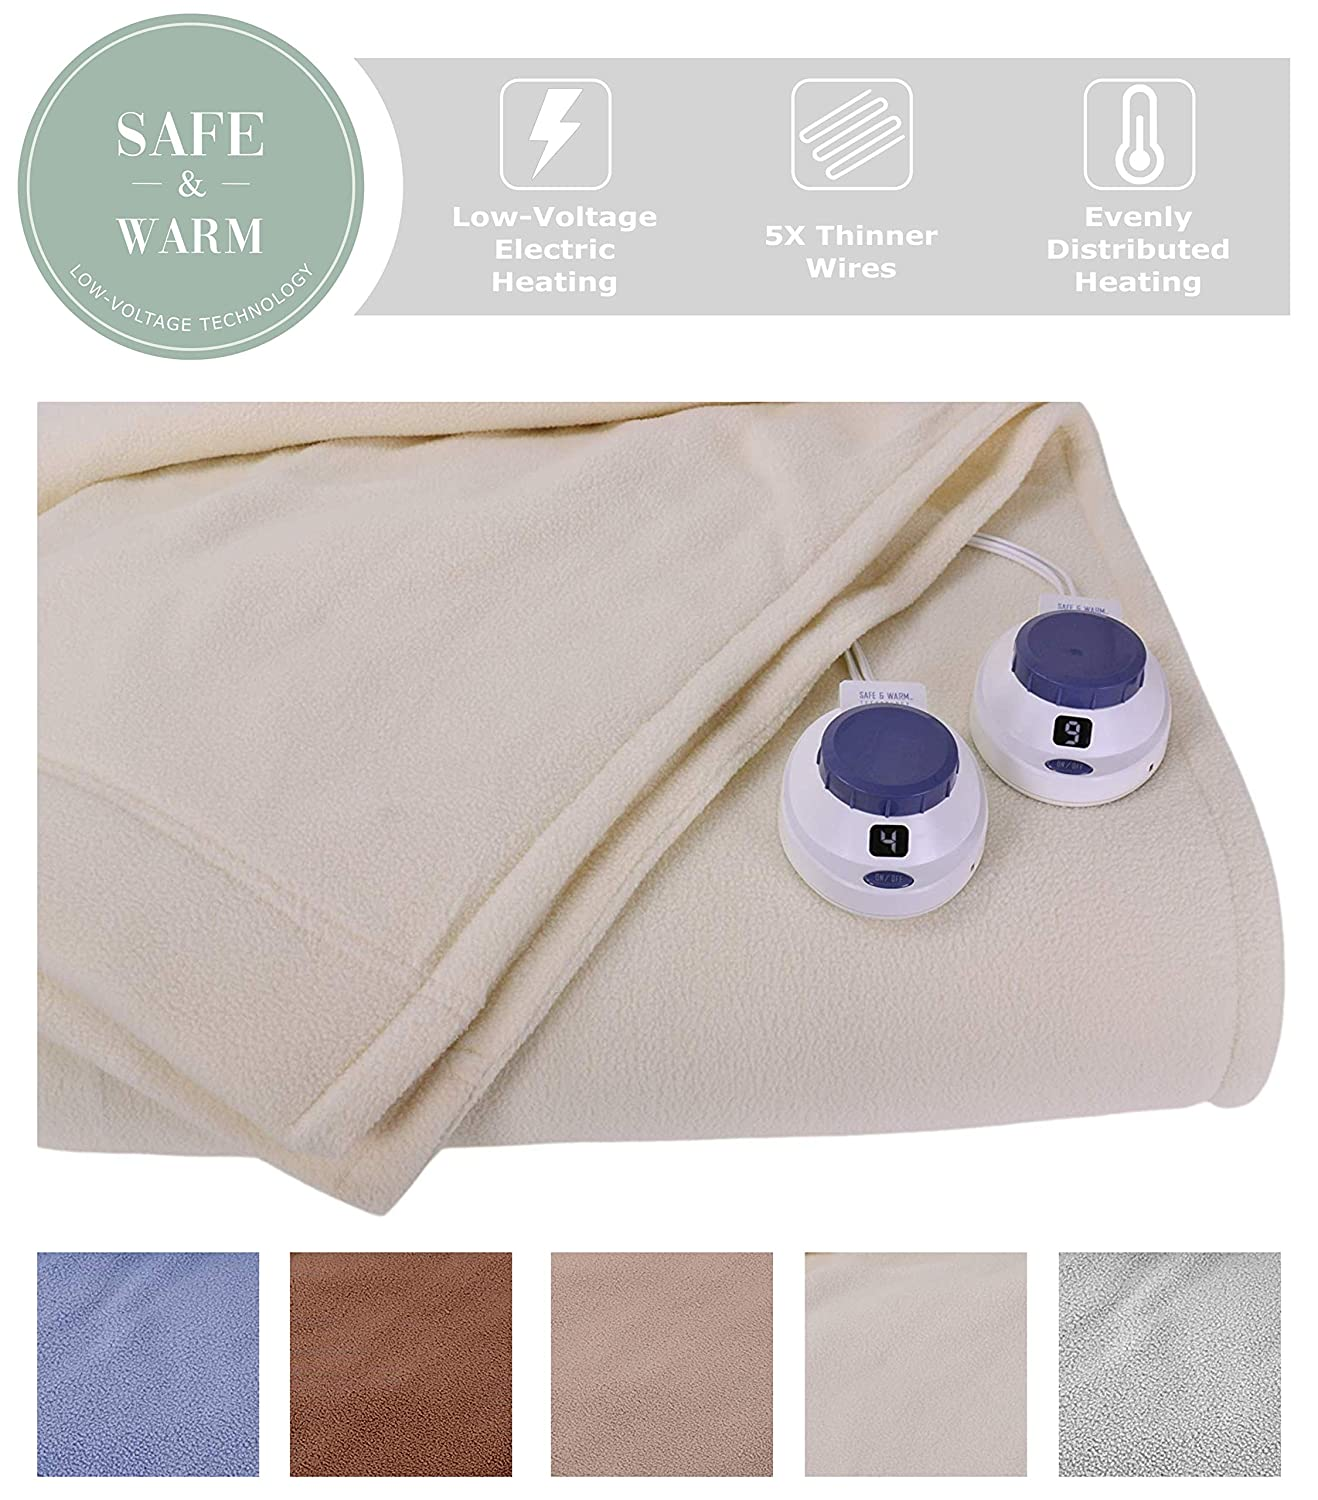 SoftHeat Luxury Micro-Fleece Electric Heated Blanket Black Friday Deals